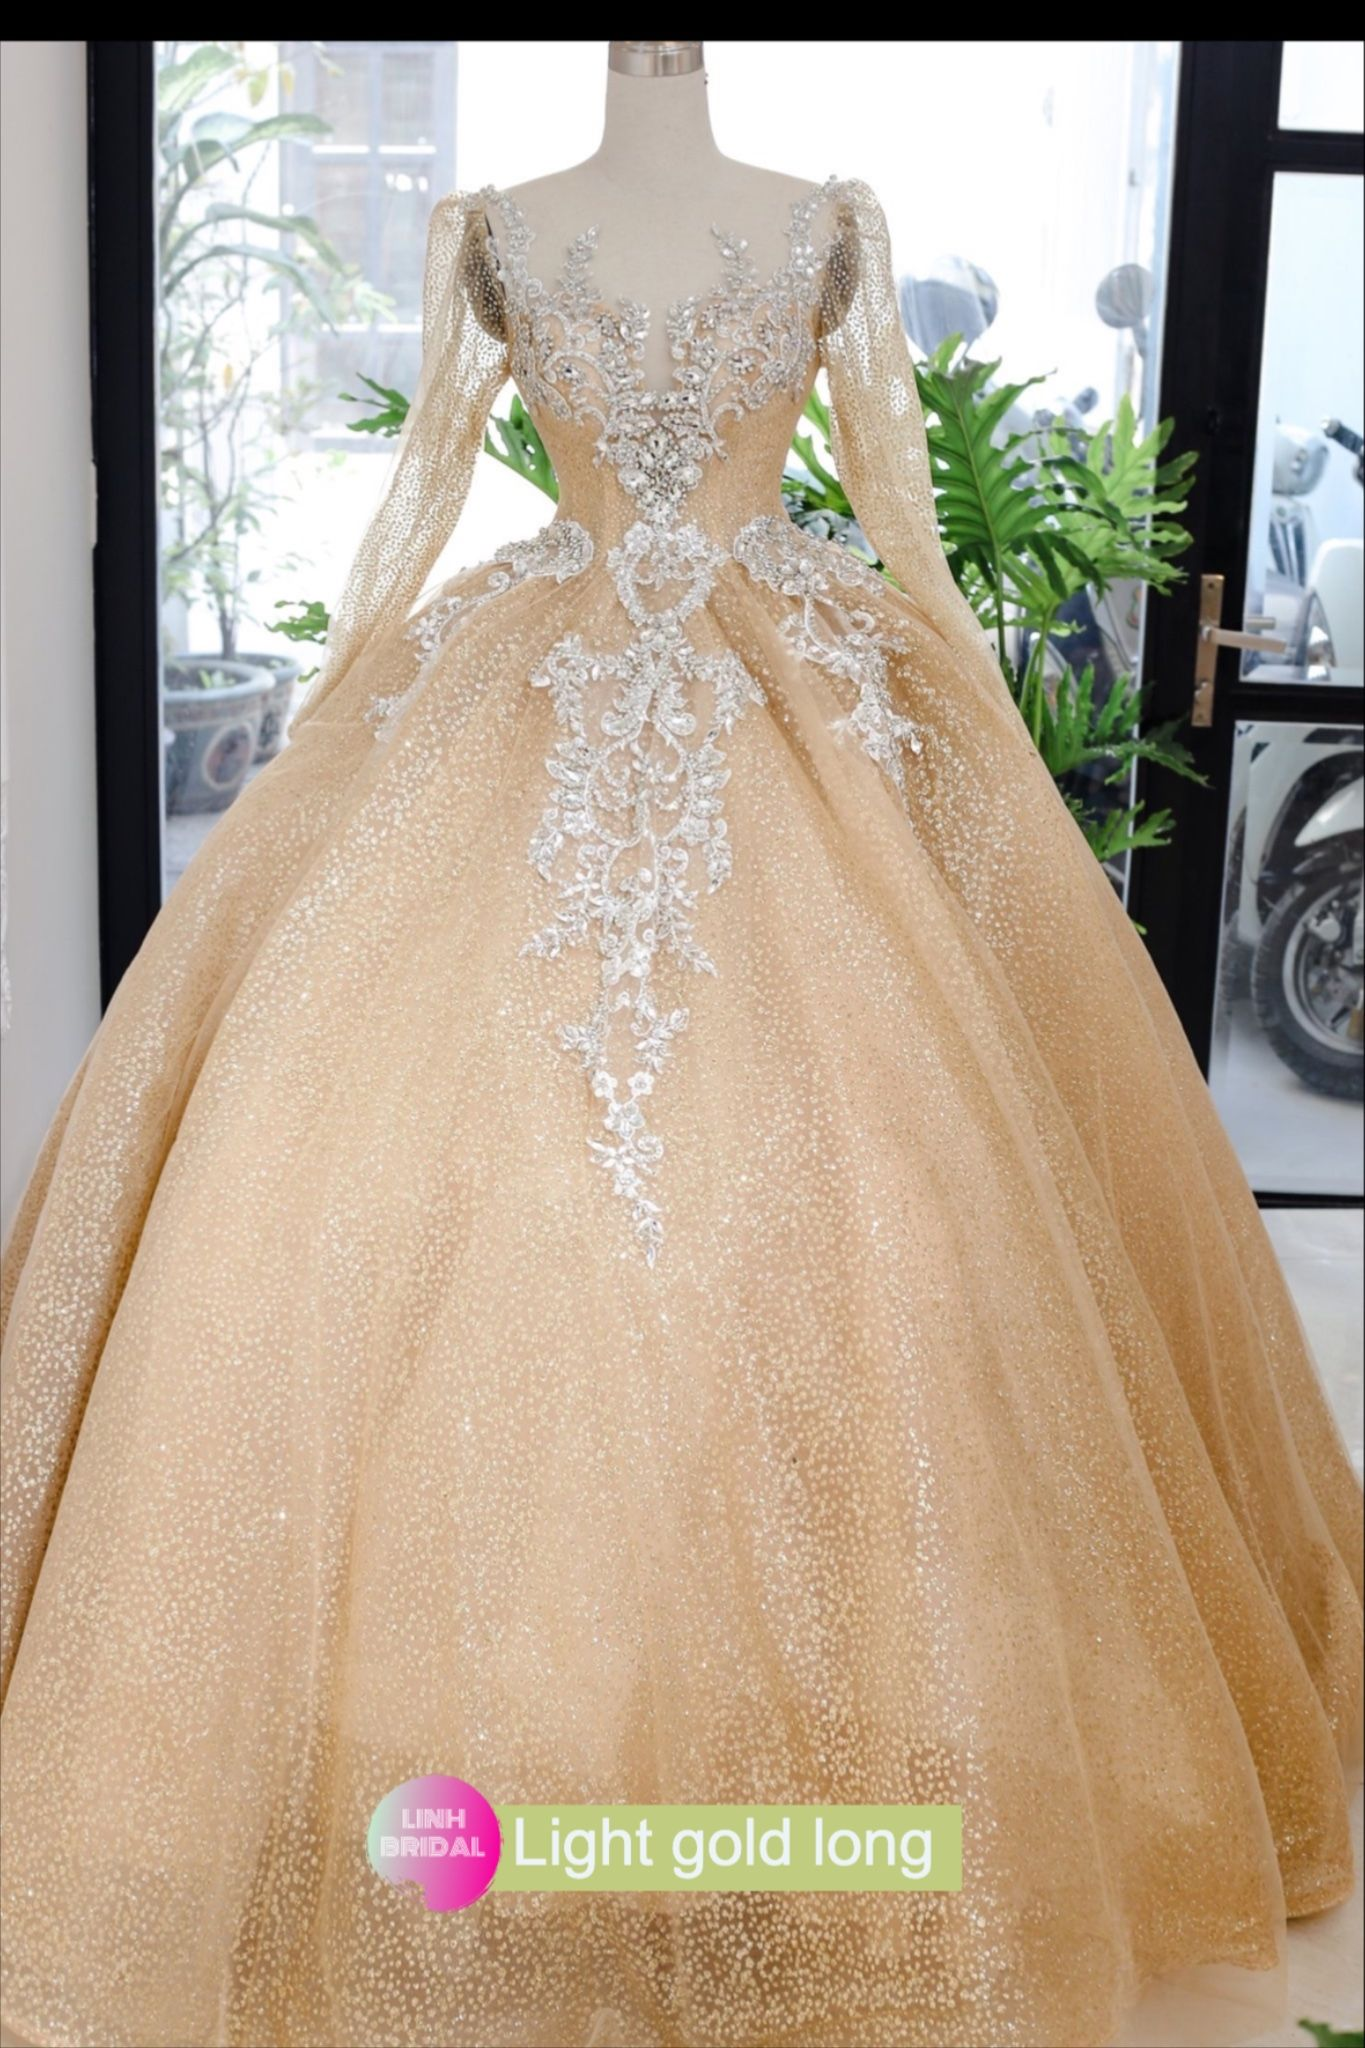 Light Gold Beaded Long Or Short Sleeves Sparkle Ball Gown Wedding Dress With Sweep Train Glitter Tulle Ball Gowns Wedding Ball Gowns Ball Gown Wedding Dress [ 2048 x 1365 Pixel ]